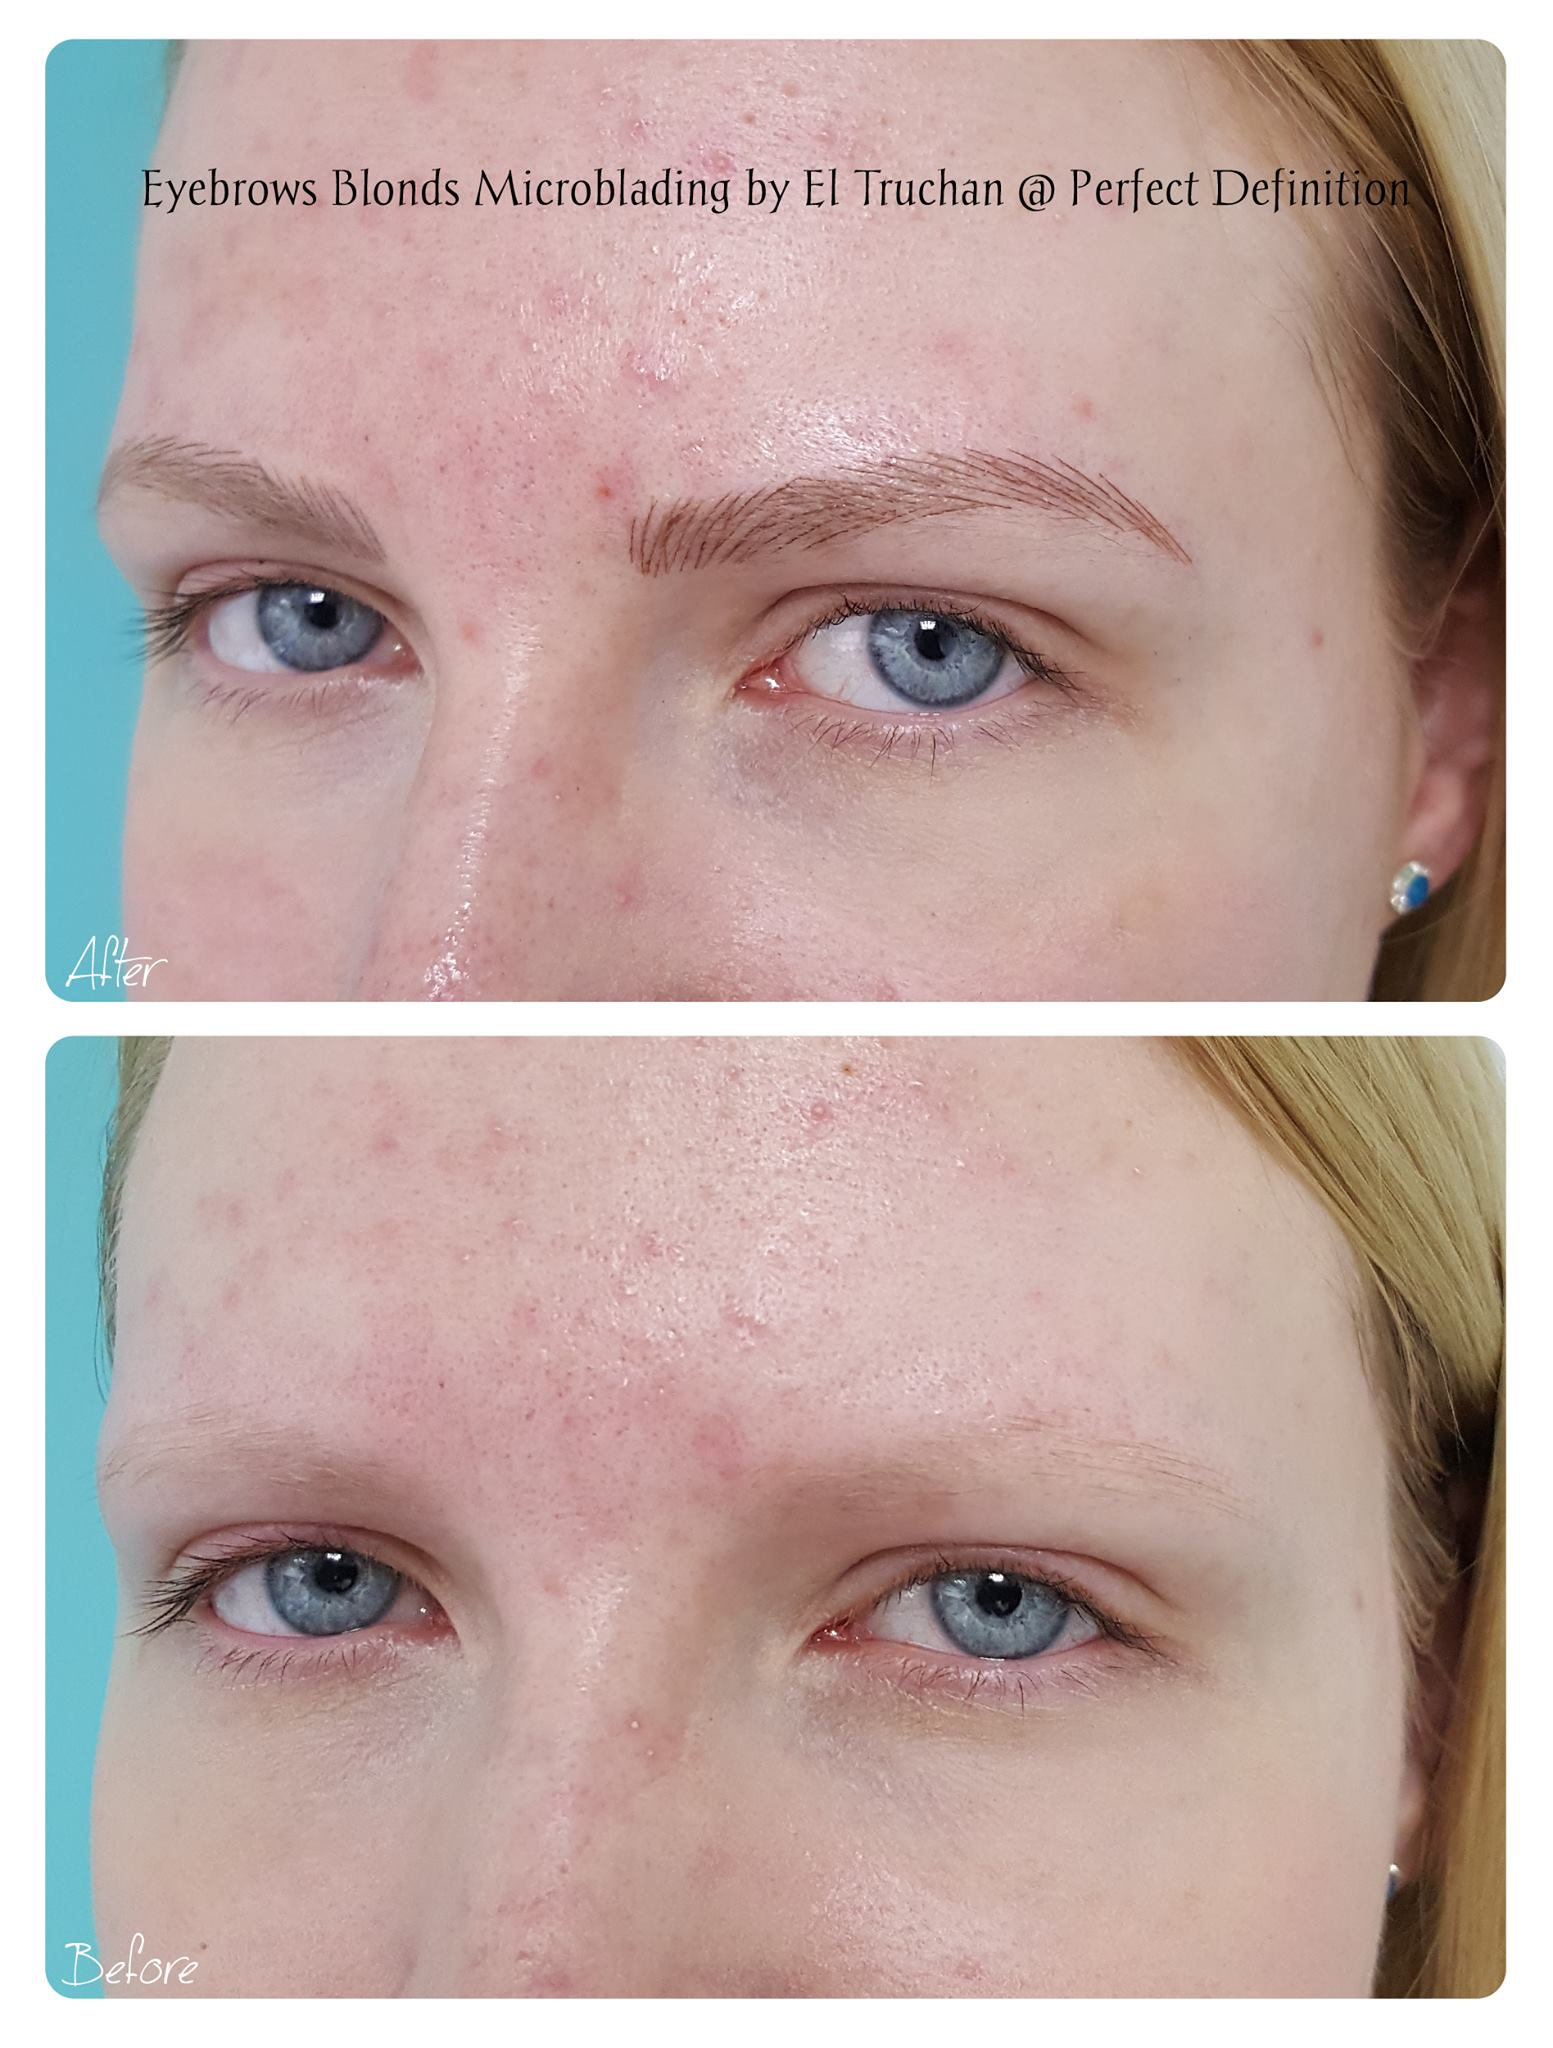 Eyebrows Blondes Microblading by El Truc